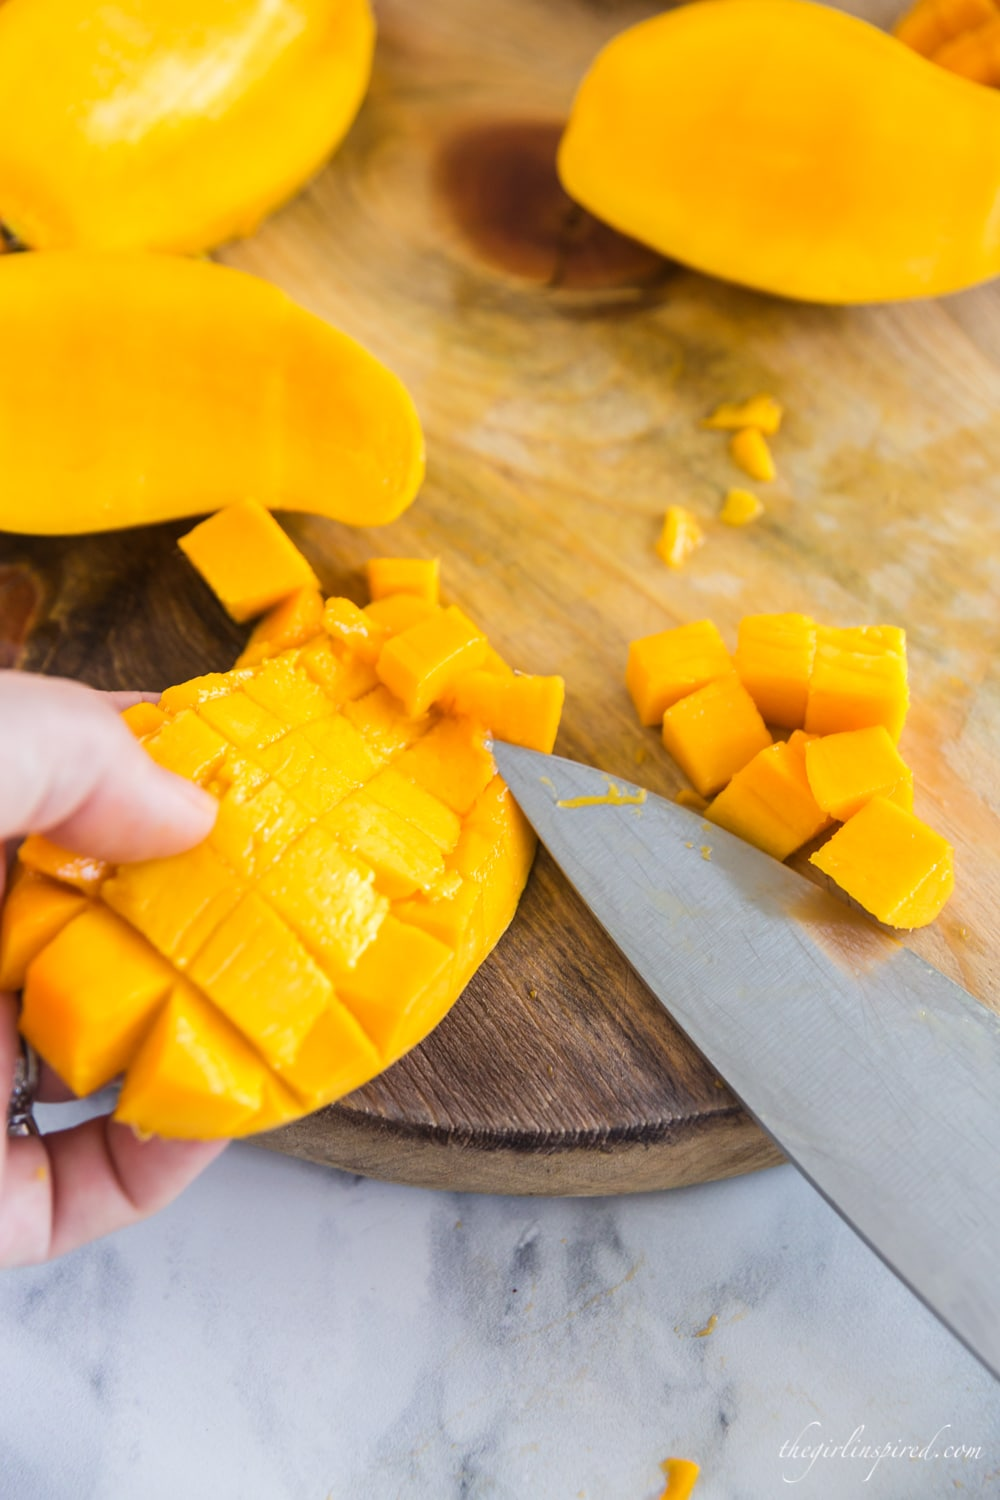 knife cutting chunks of mango off skin